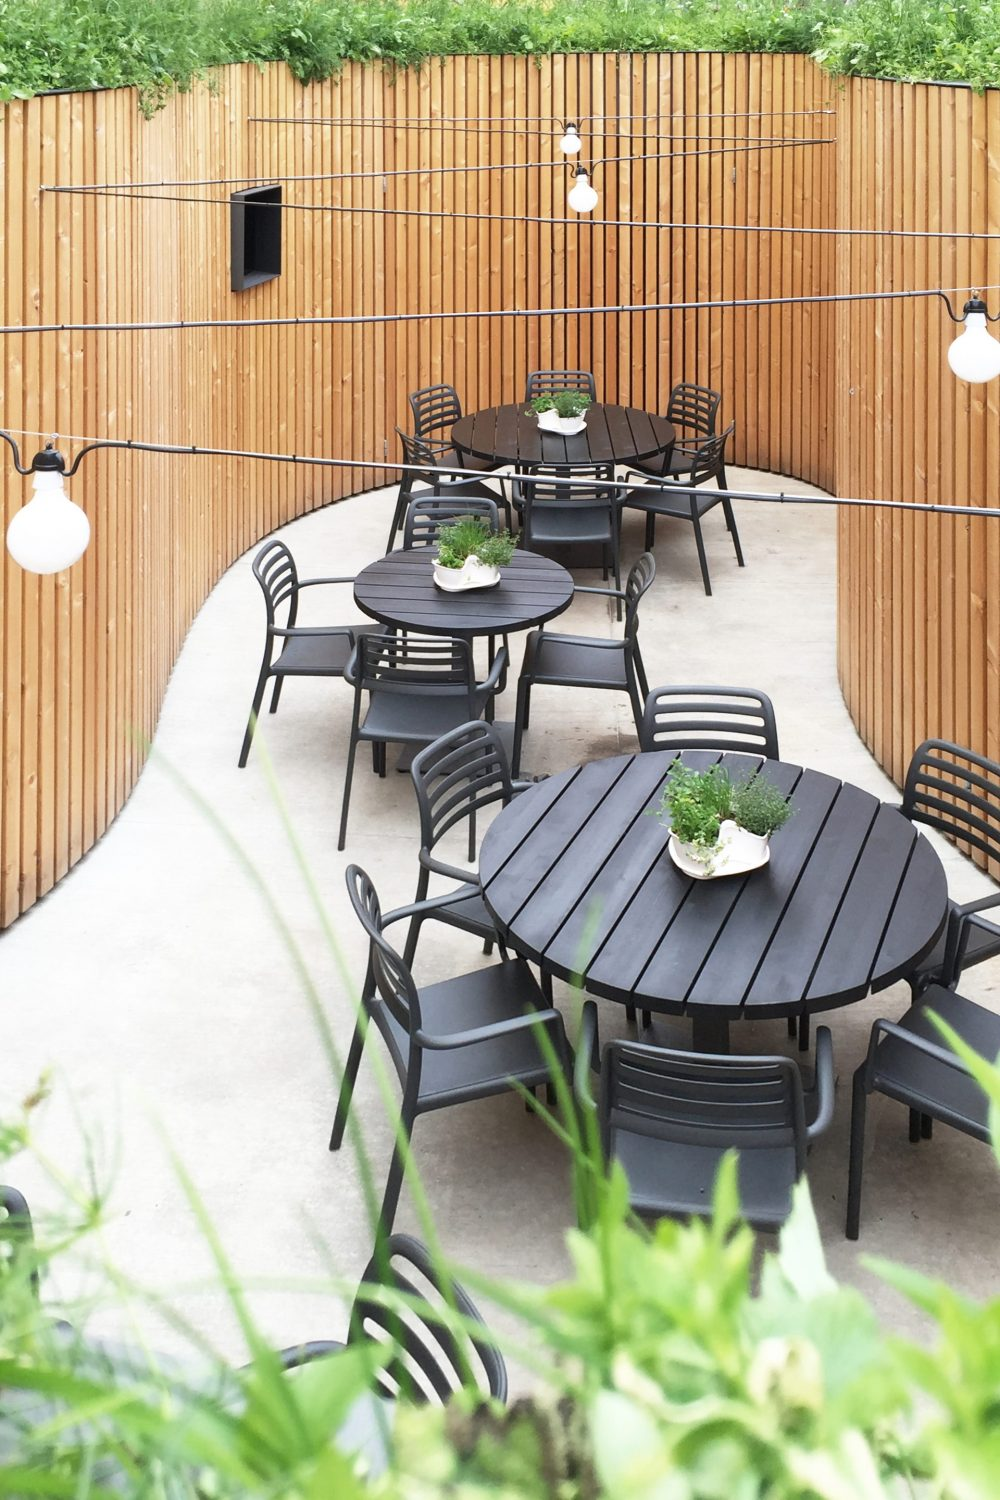 Garden Patio of the Peppino Restaurant by Atelier 111 Architekti